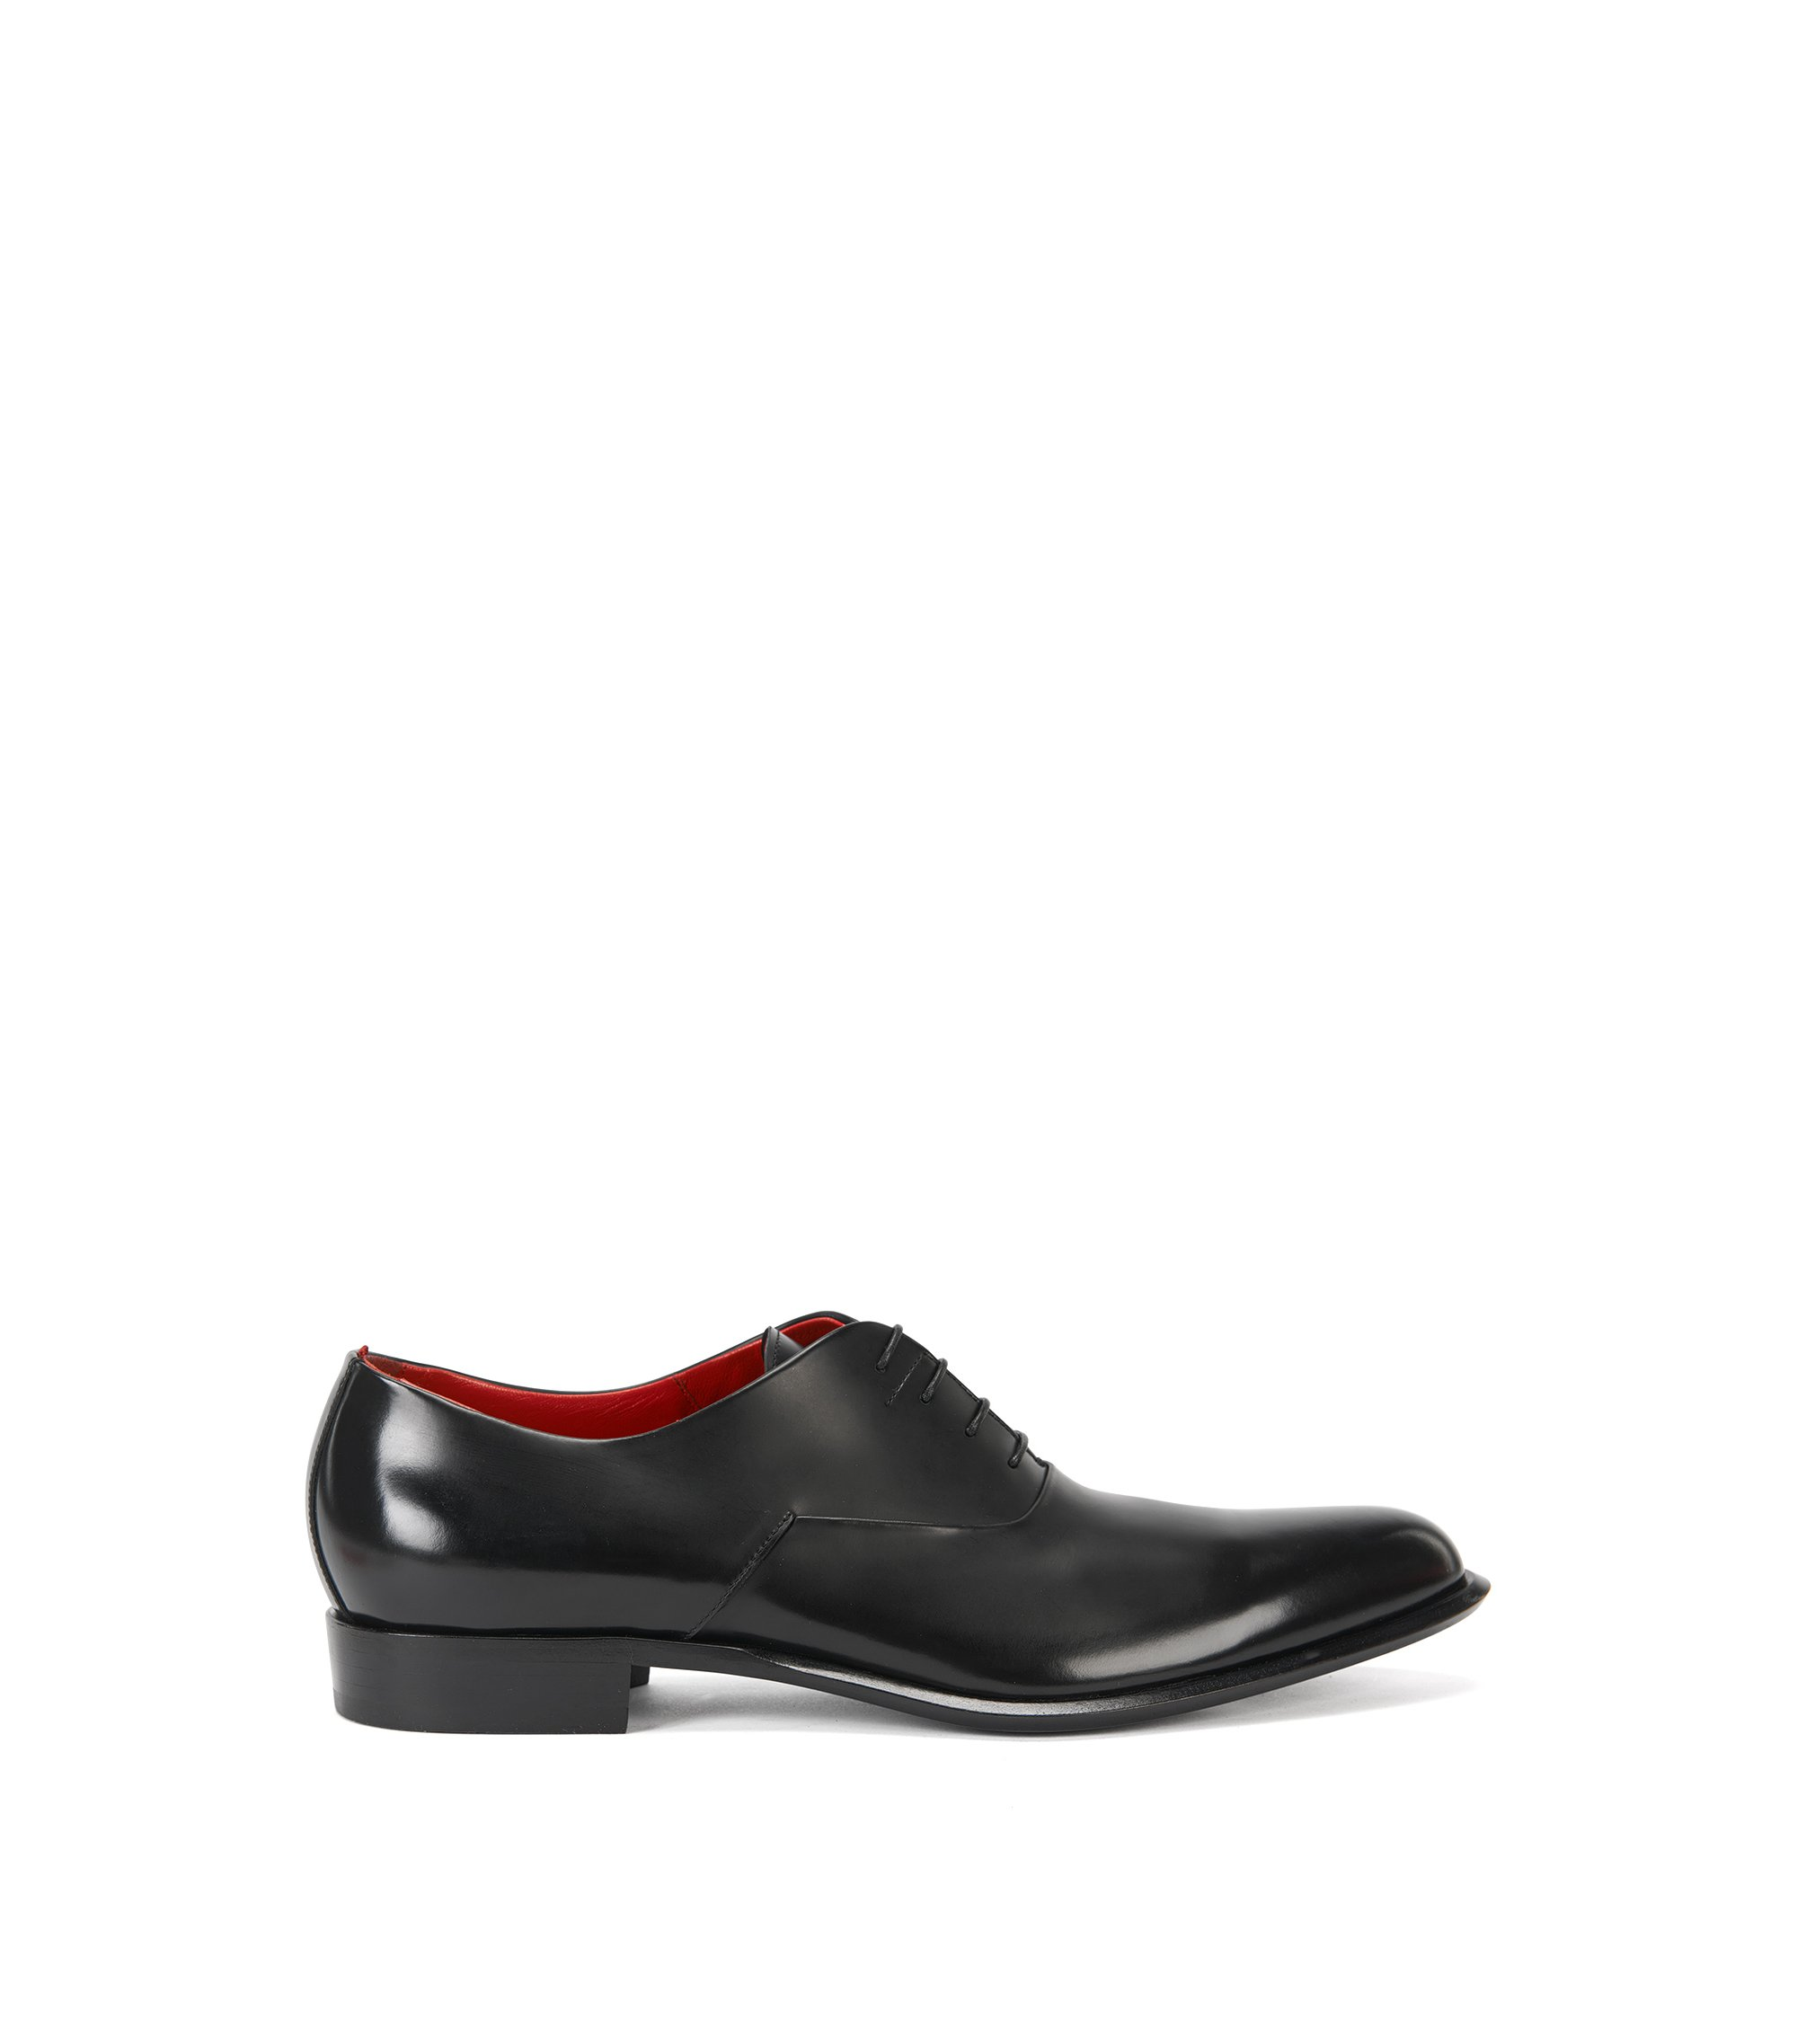 Italian-made Oxford shoes in rich leather, Black